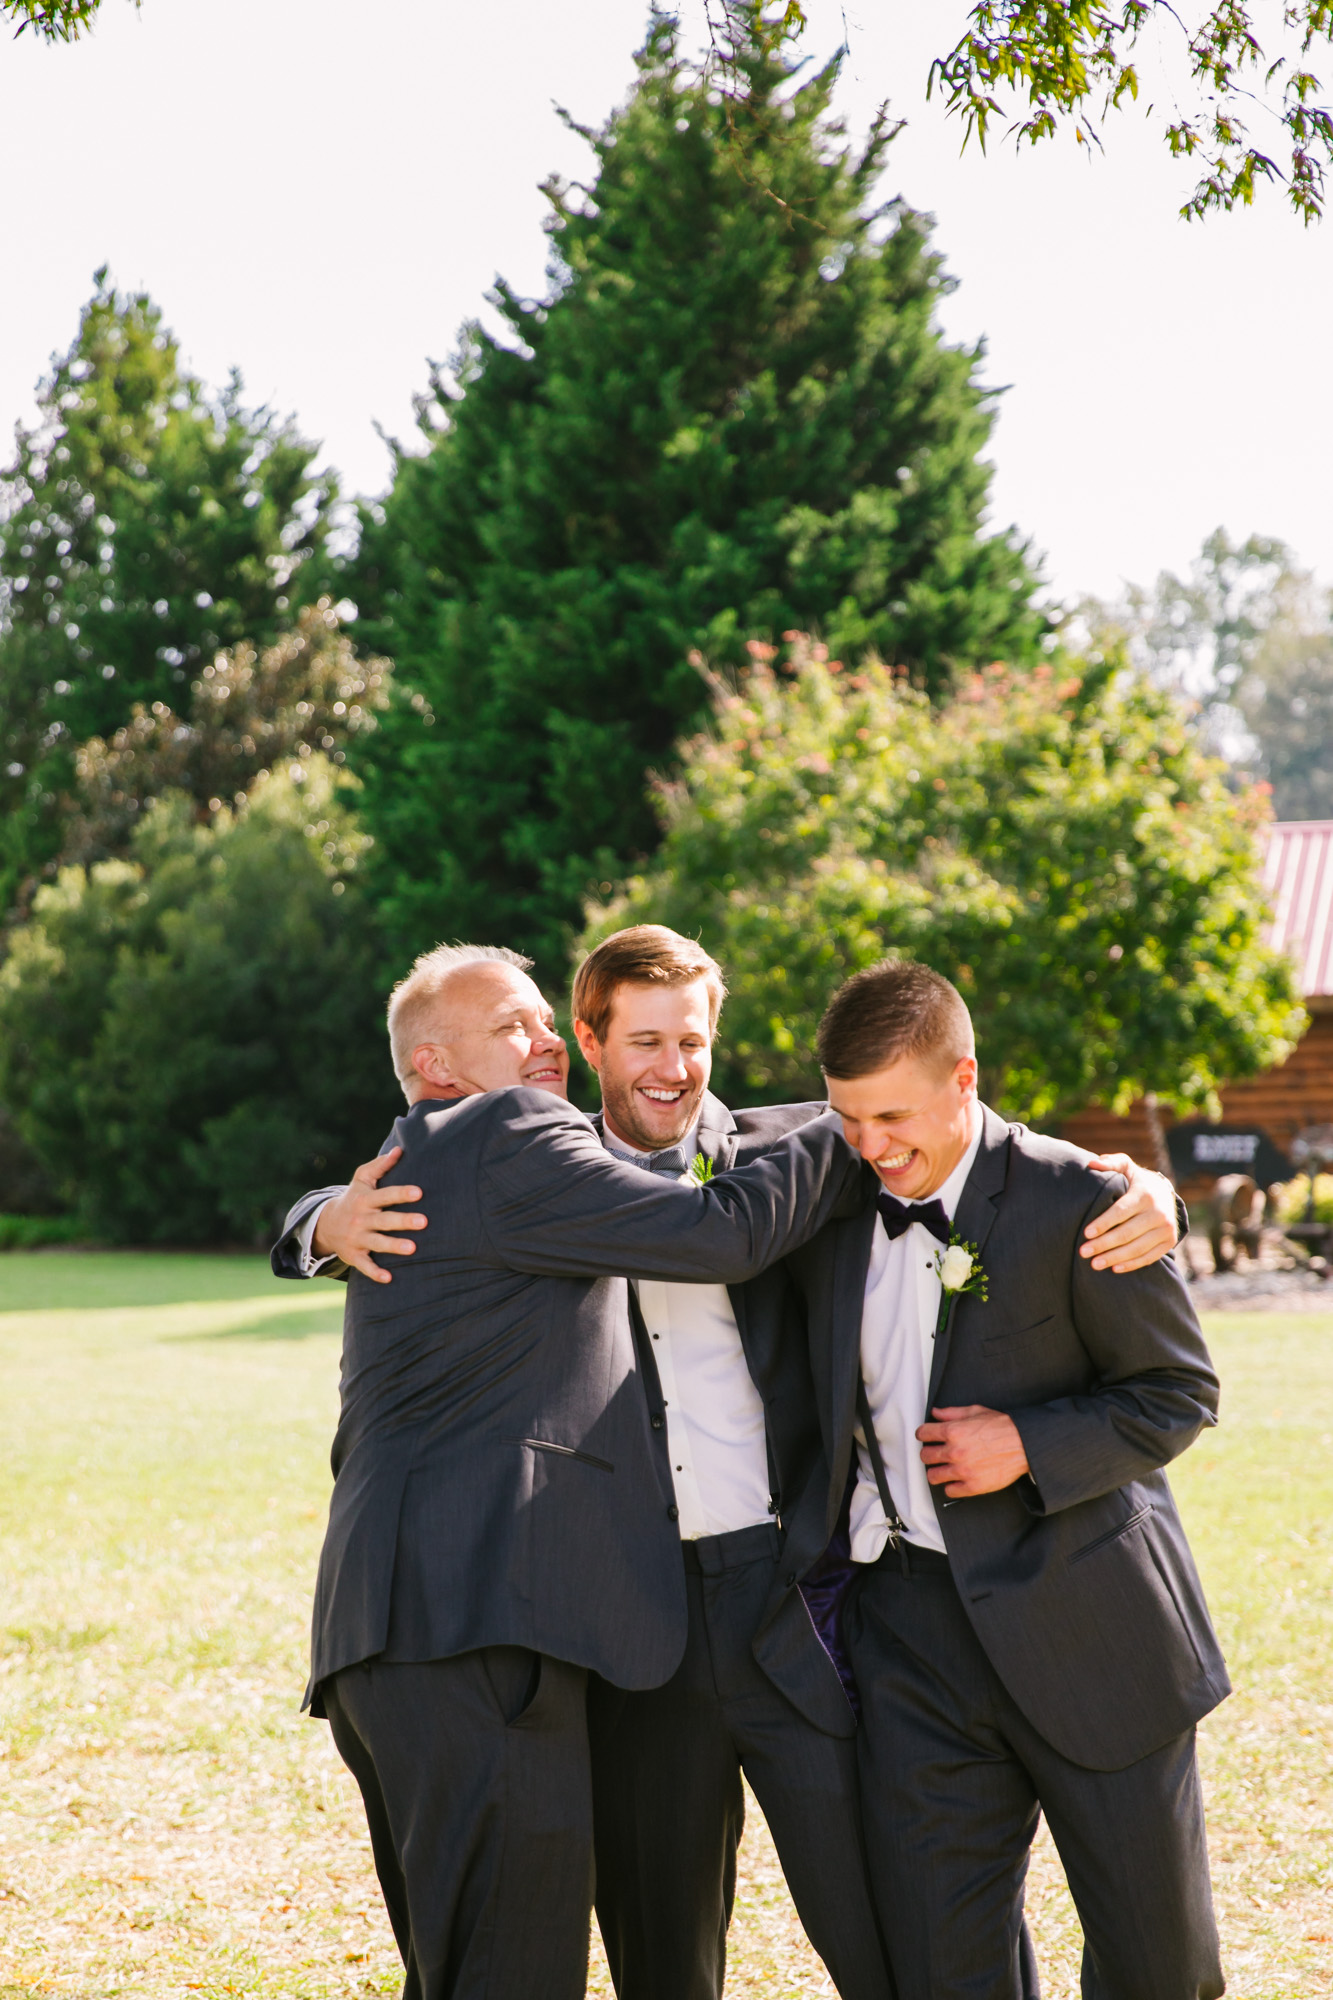 Waynesville, NC Wedding Photography | Groom Hugging Father and Brother